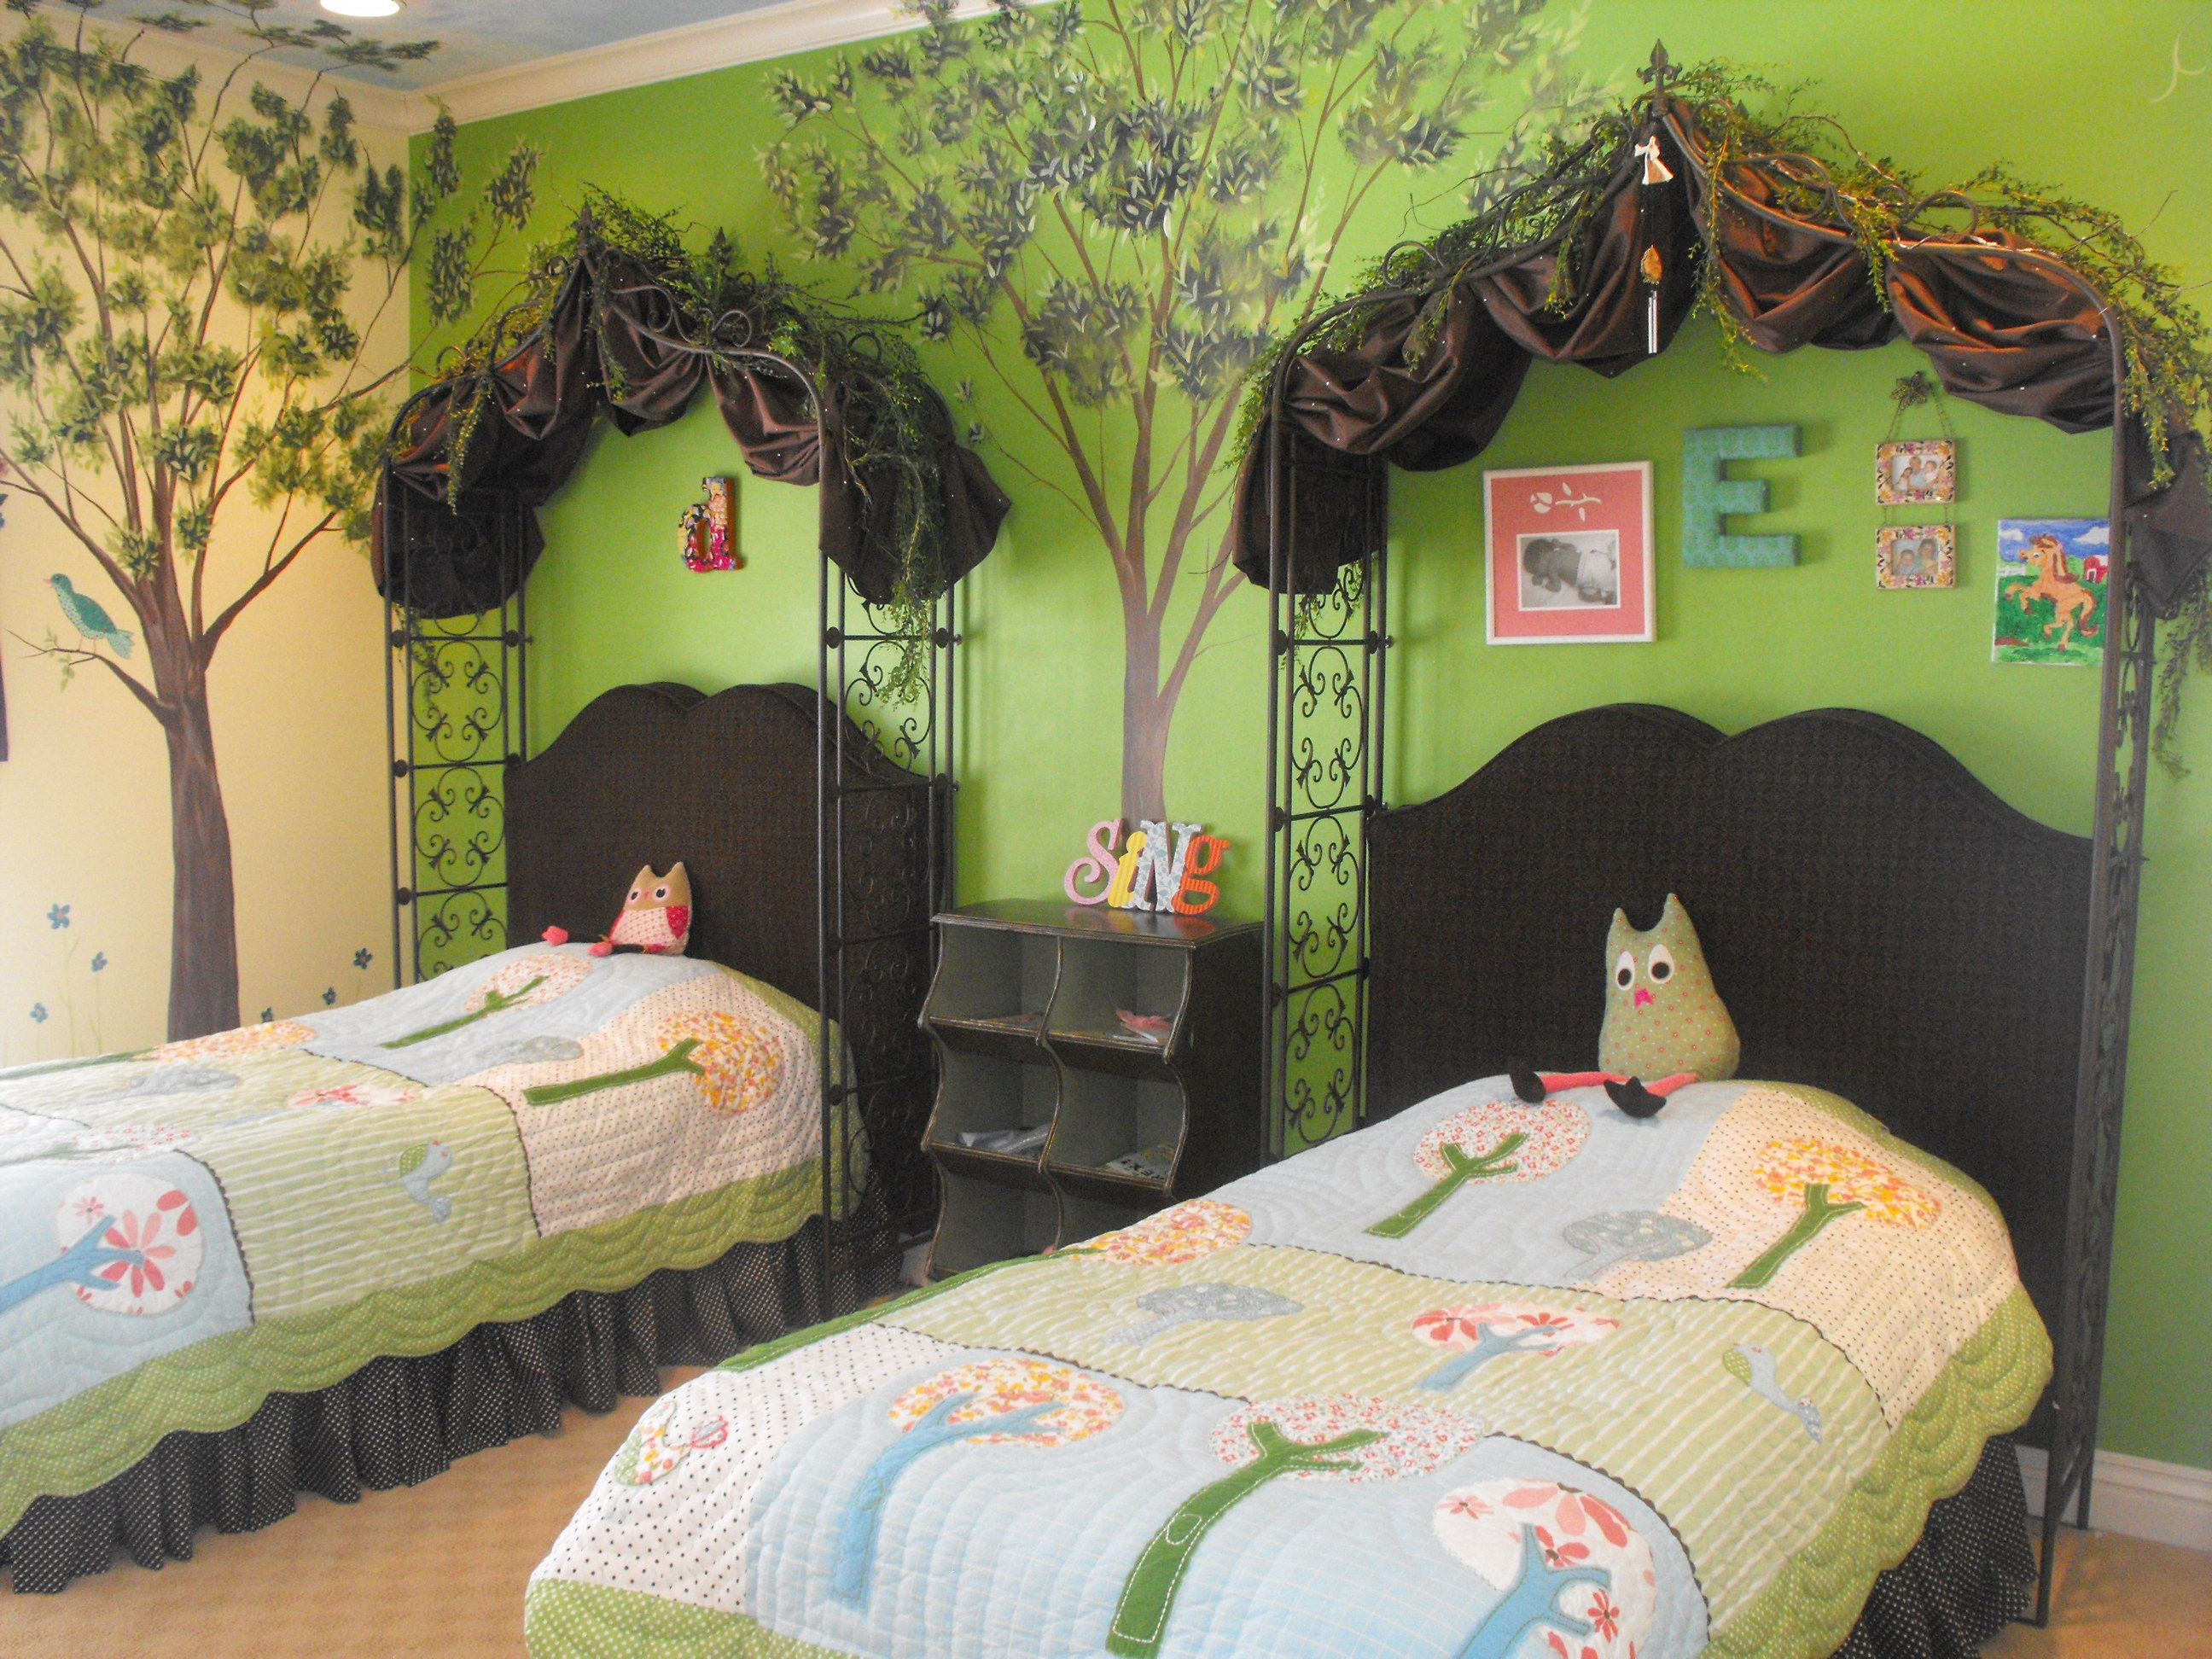 Rainforest Bedroom Ideas Pin By Meghan Rudisill On Home Decor Enchanted Woodland